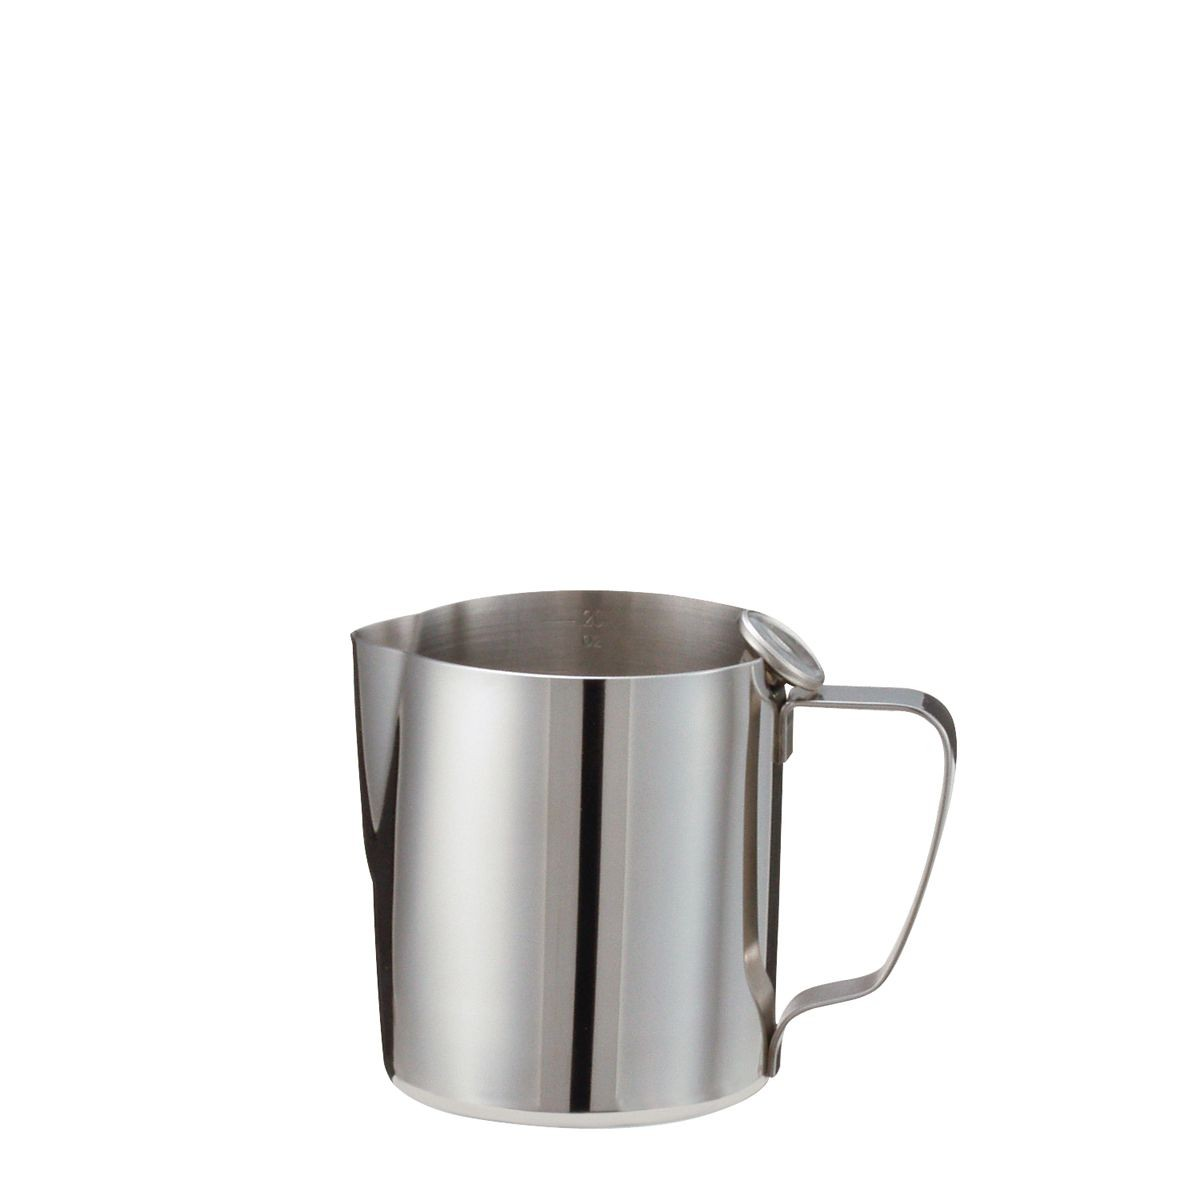 Service Ideas FROTH206 Frothing Pitcher 6-Liter with 6 oz. Increments